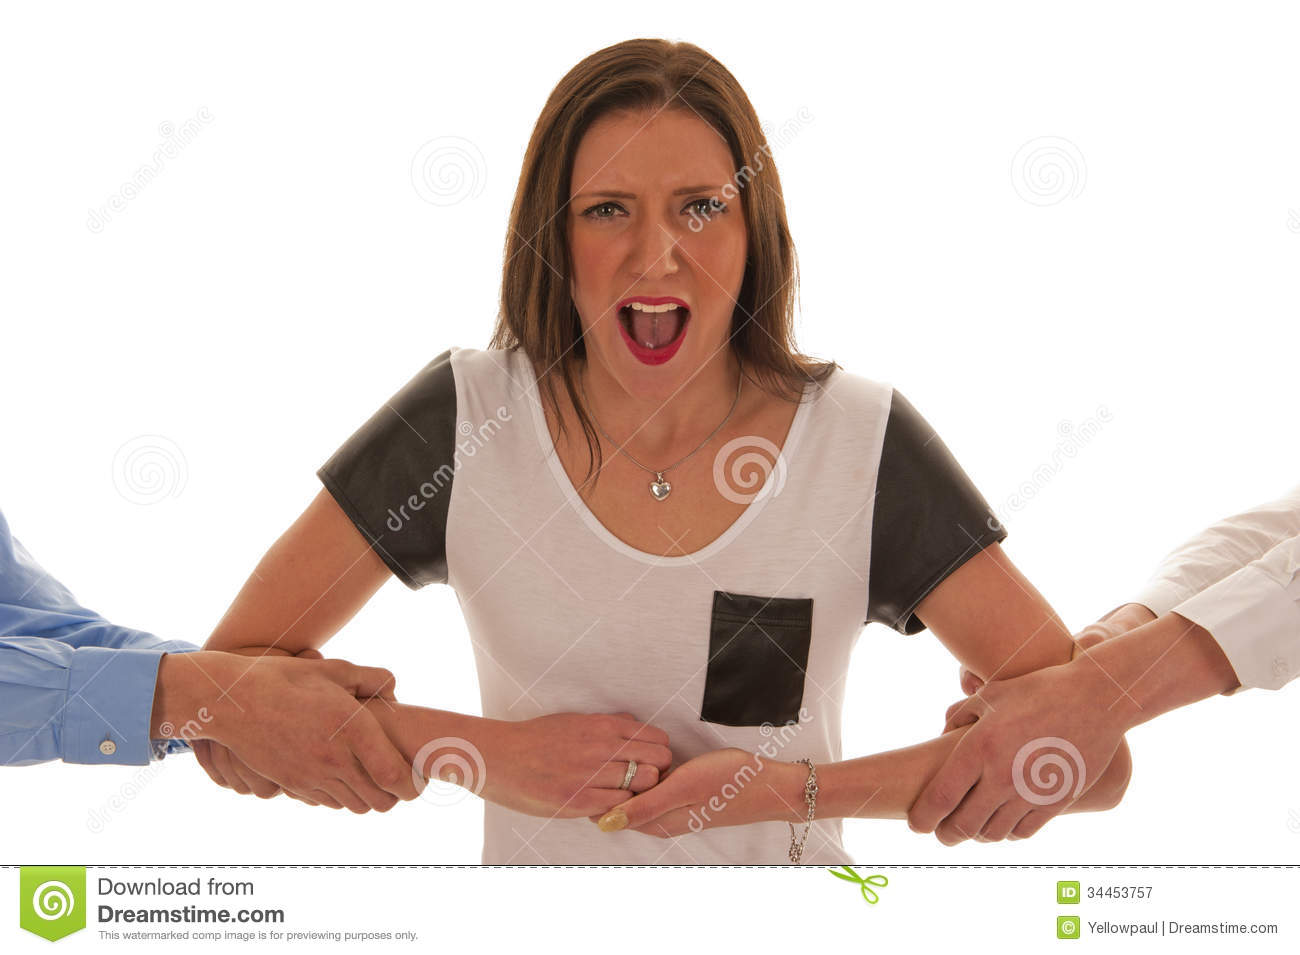 boys pulling arms girl resist stock image